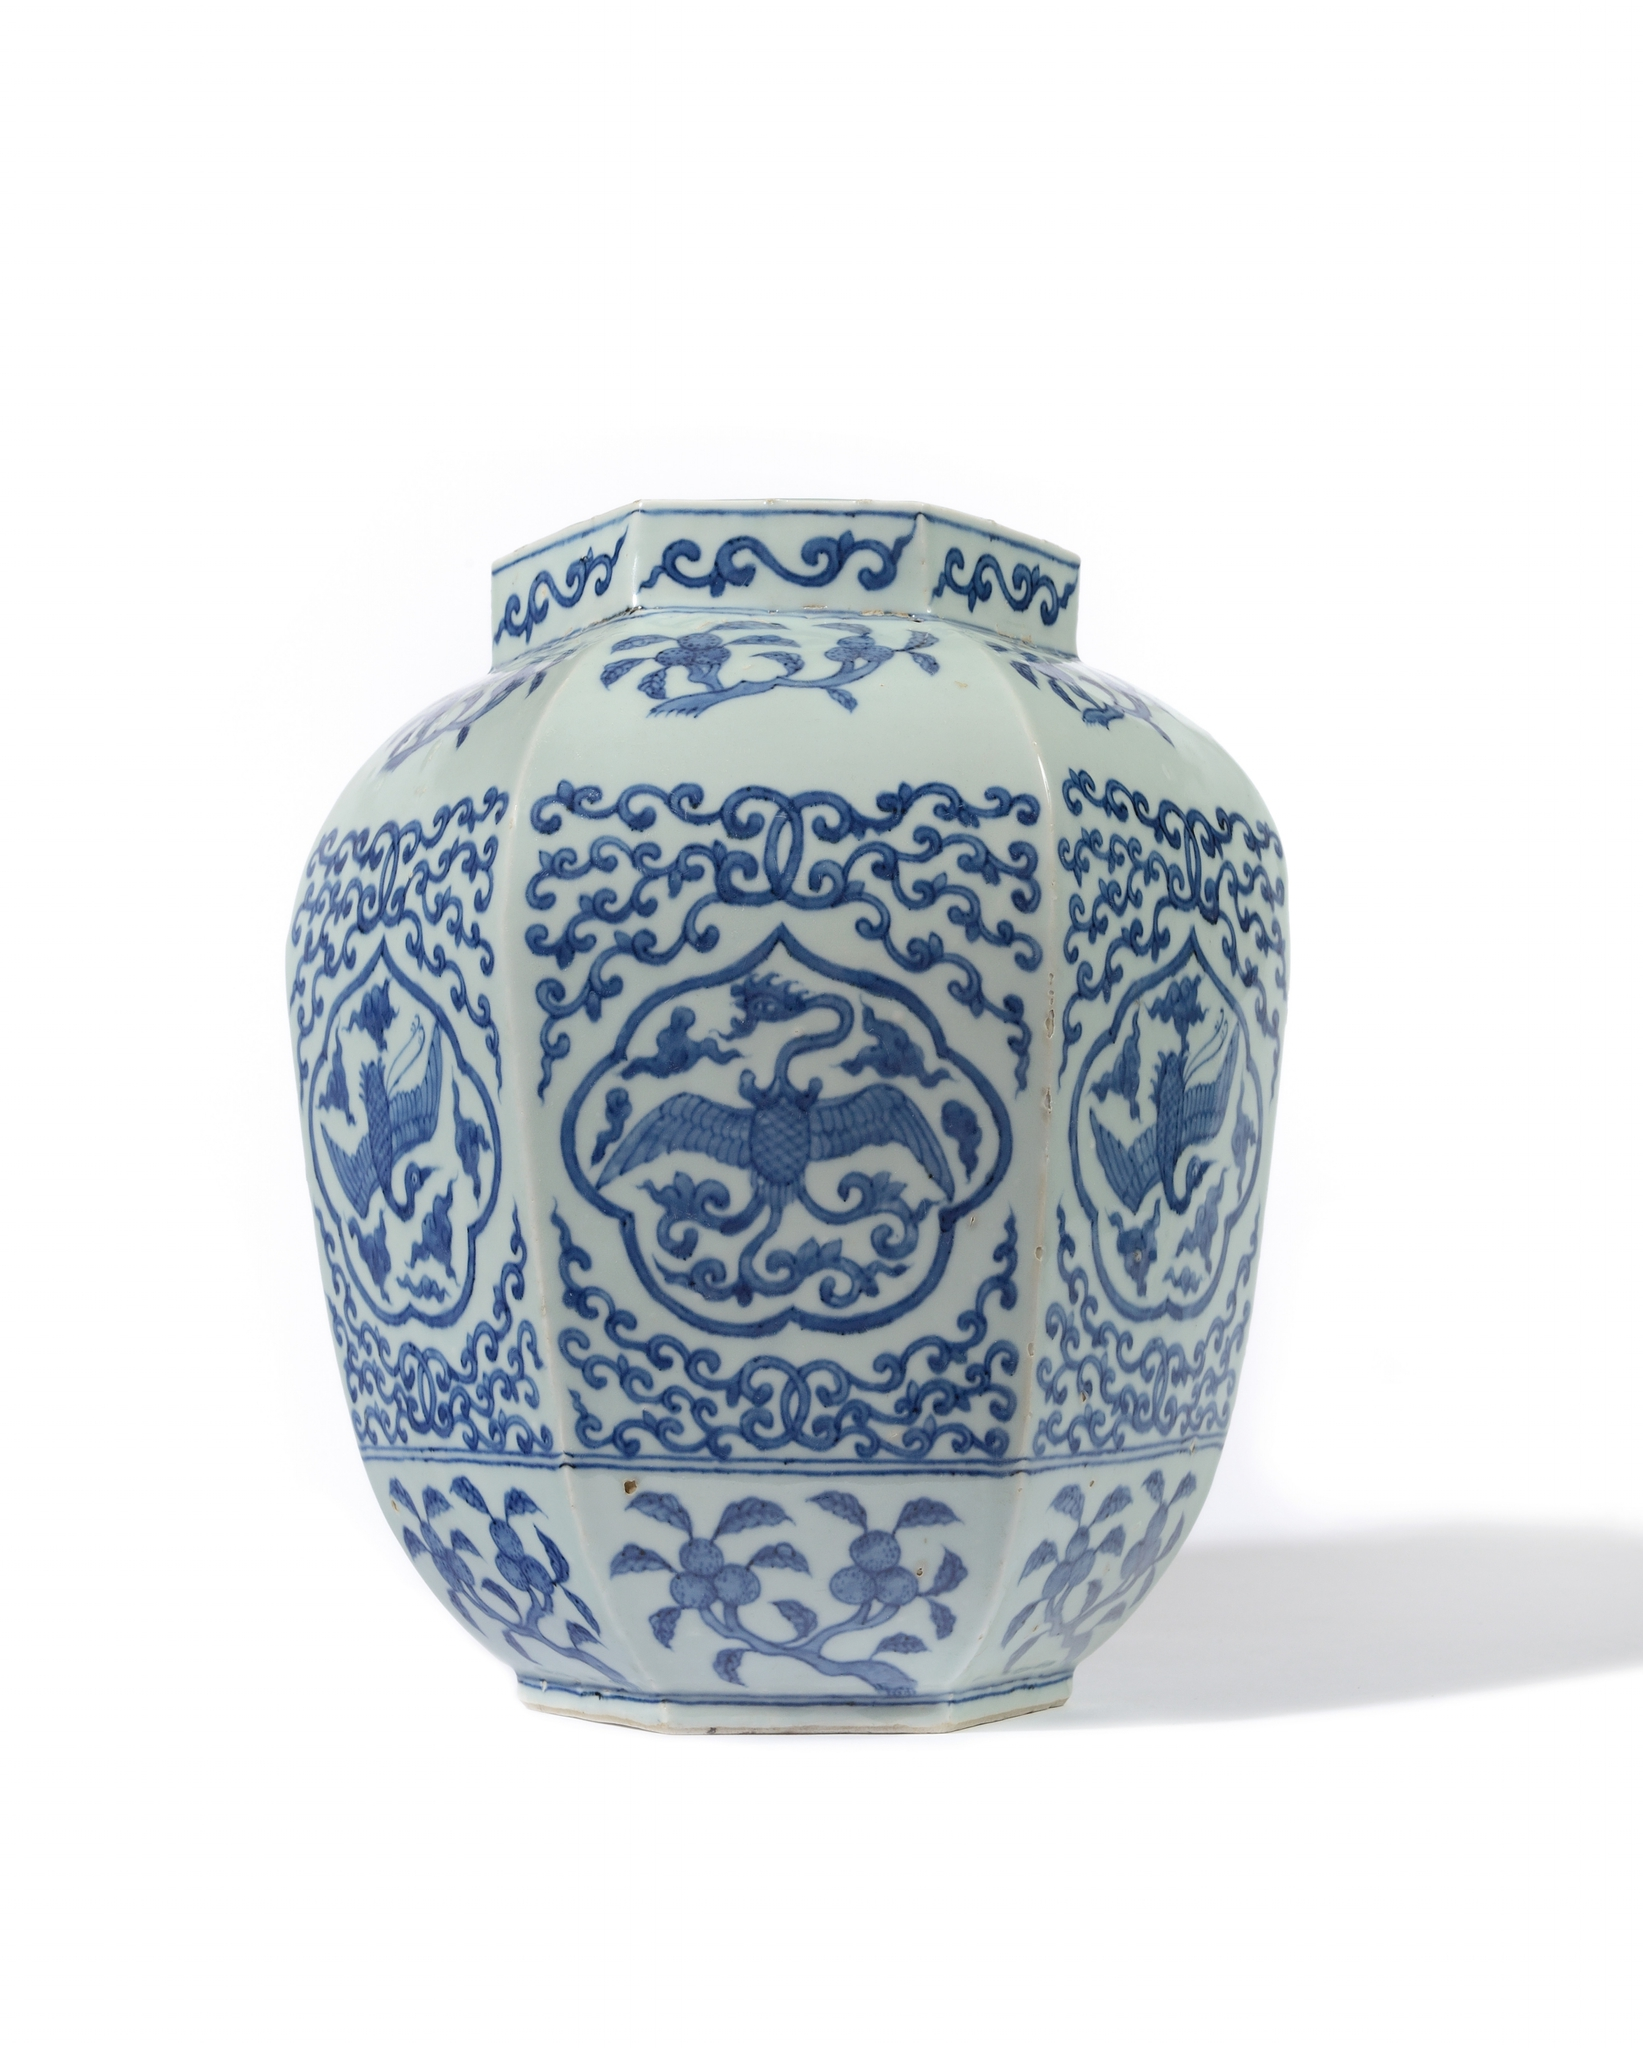 An hexagonal baluster porcelain vase decorated with phoenix and cranes, Wanli period (1573 – 1619)